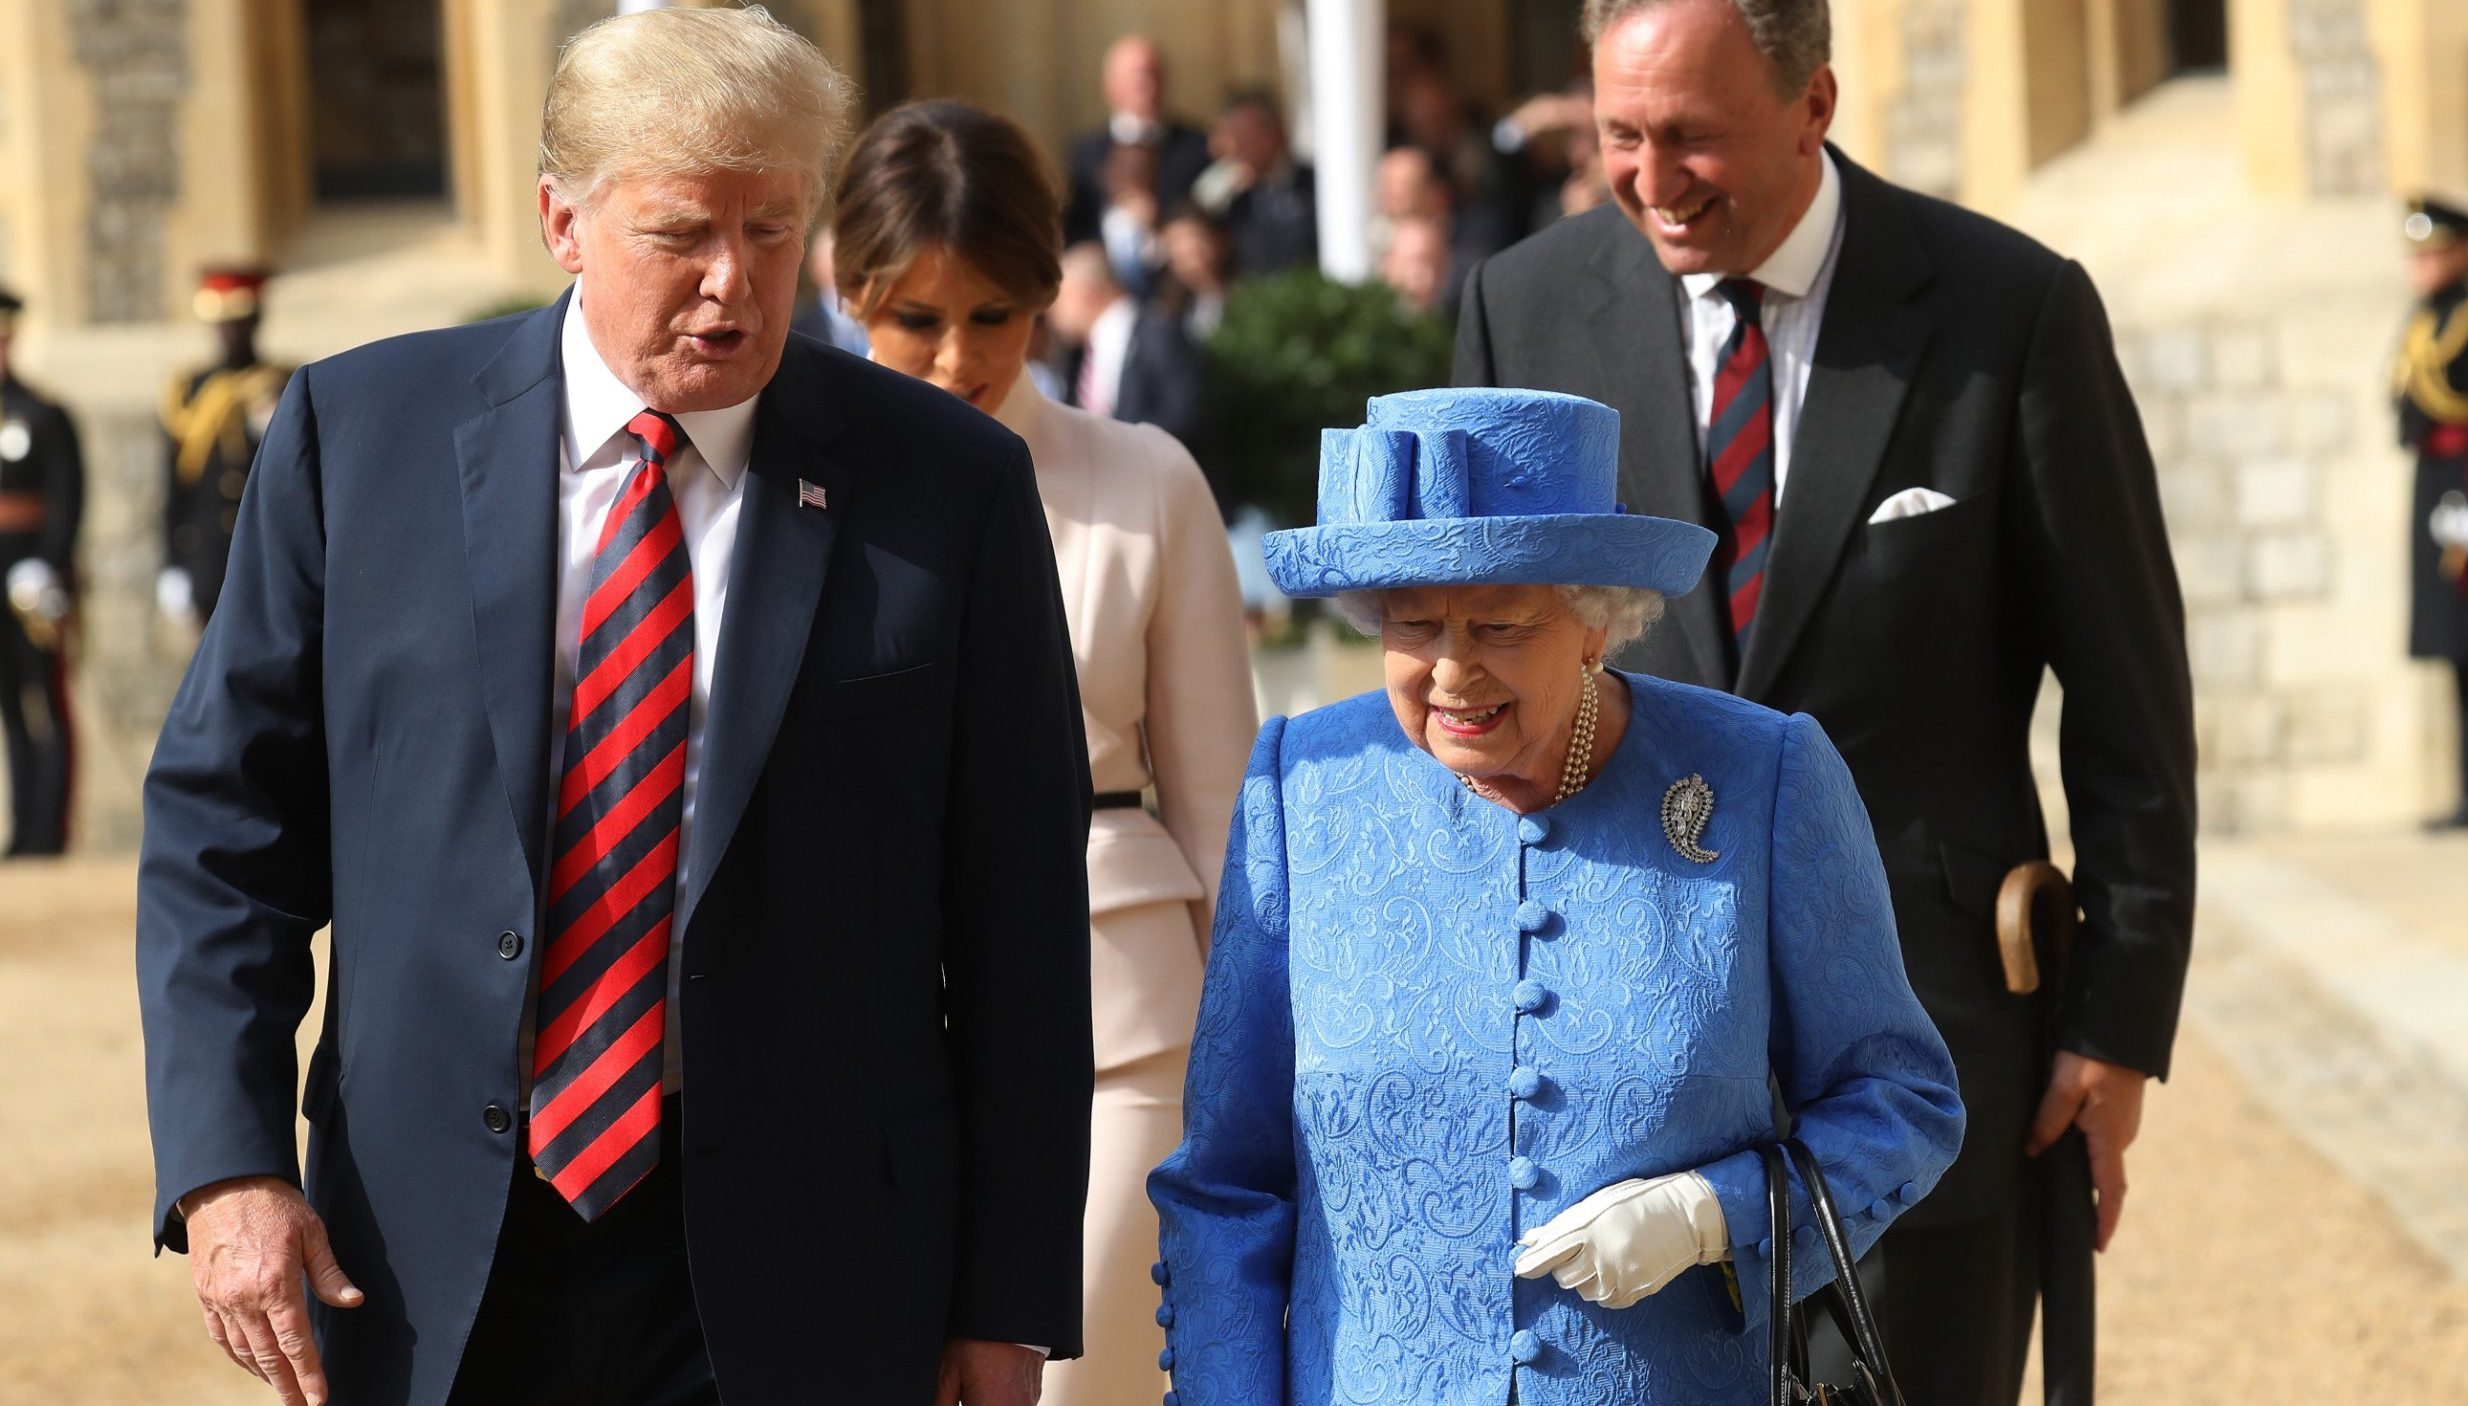 WINDSOR, ENGLAND - JULY 13: Queen Elizabeth II and President of the United States, Donald Trump walk from the Quadrangle after inspecting an honour guard at Windsor Castle on July 13, 2018 in Windsor, England. Her Majesty welcomed the President and Mrs Trump at the dais in the Quadrangle of the Castle. A Guard of Honour, formed of the Coldstream Guards, gave a Royal Salute and the US National Anthem was played. The Queen and the President inspected the Guard of Honour before watching the military march past. The President and First Lady then joined Her Majesty for tea at the Castle. (Photo by Chris Jackson/Getty Images)